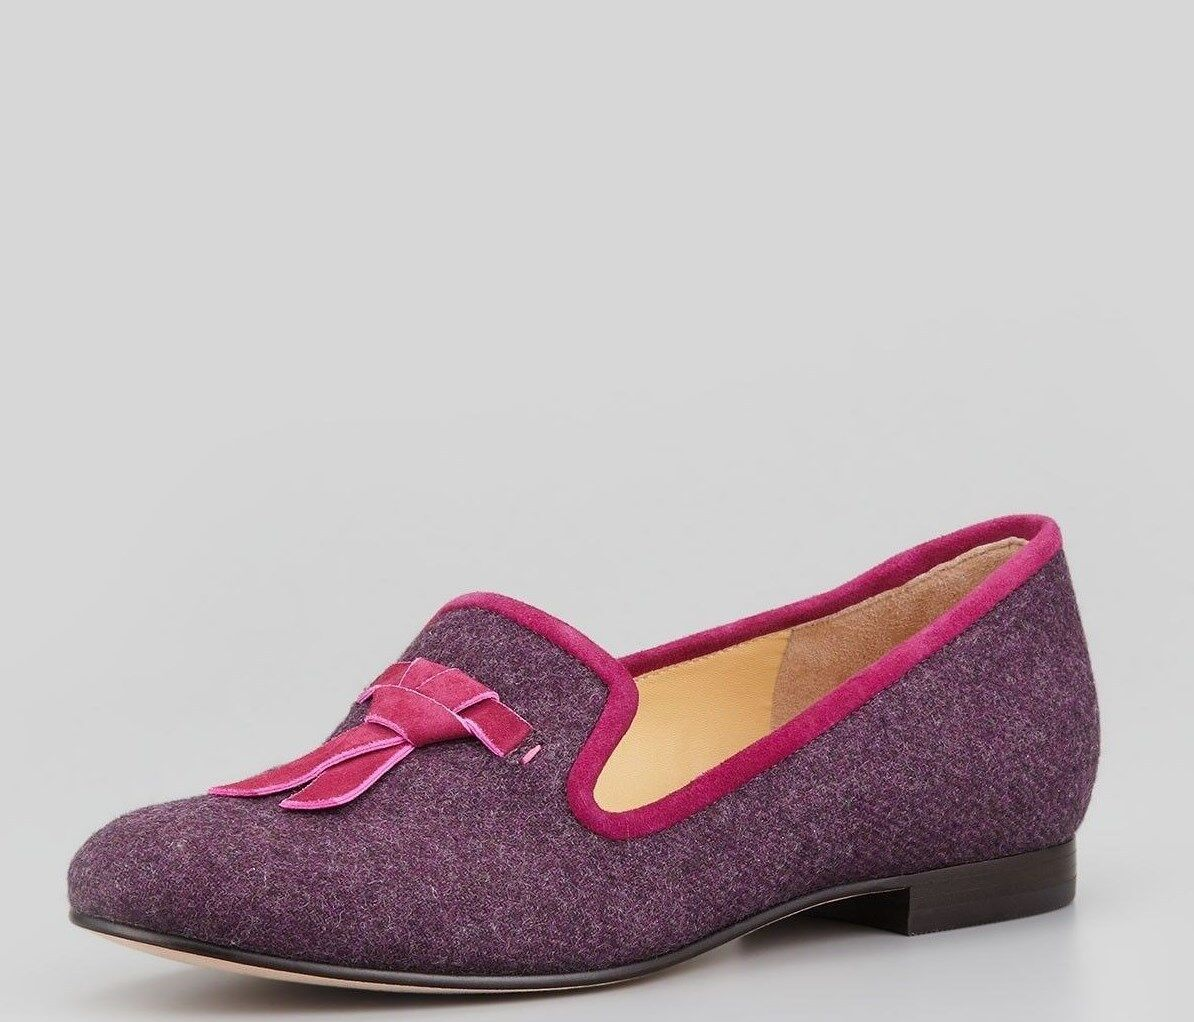 Cole Haan Sabrina Tassel Winery Flannel Loafer shoes Womens 8 8 8 NEW IN BOX e5c06f